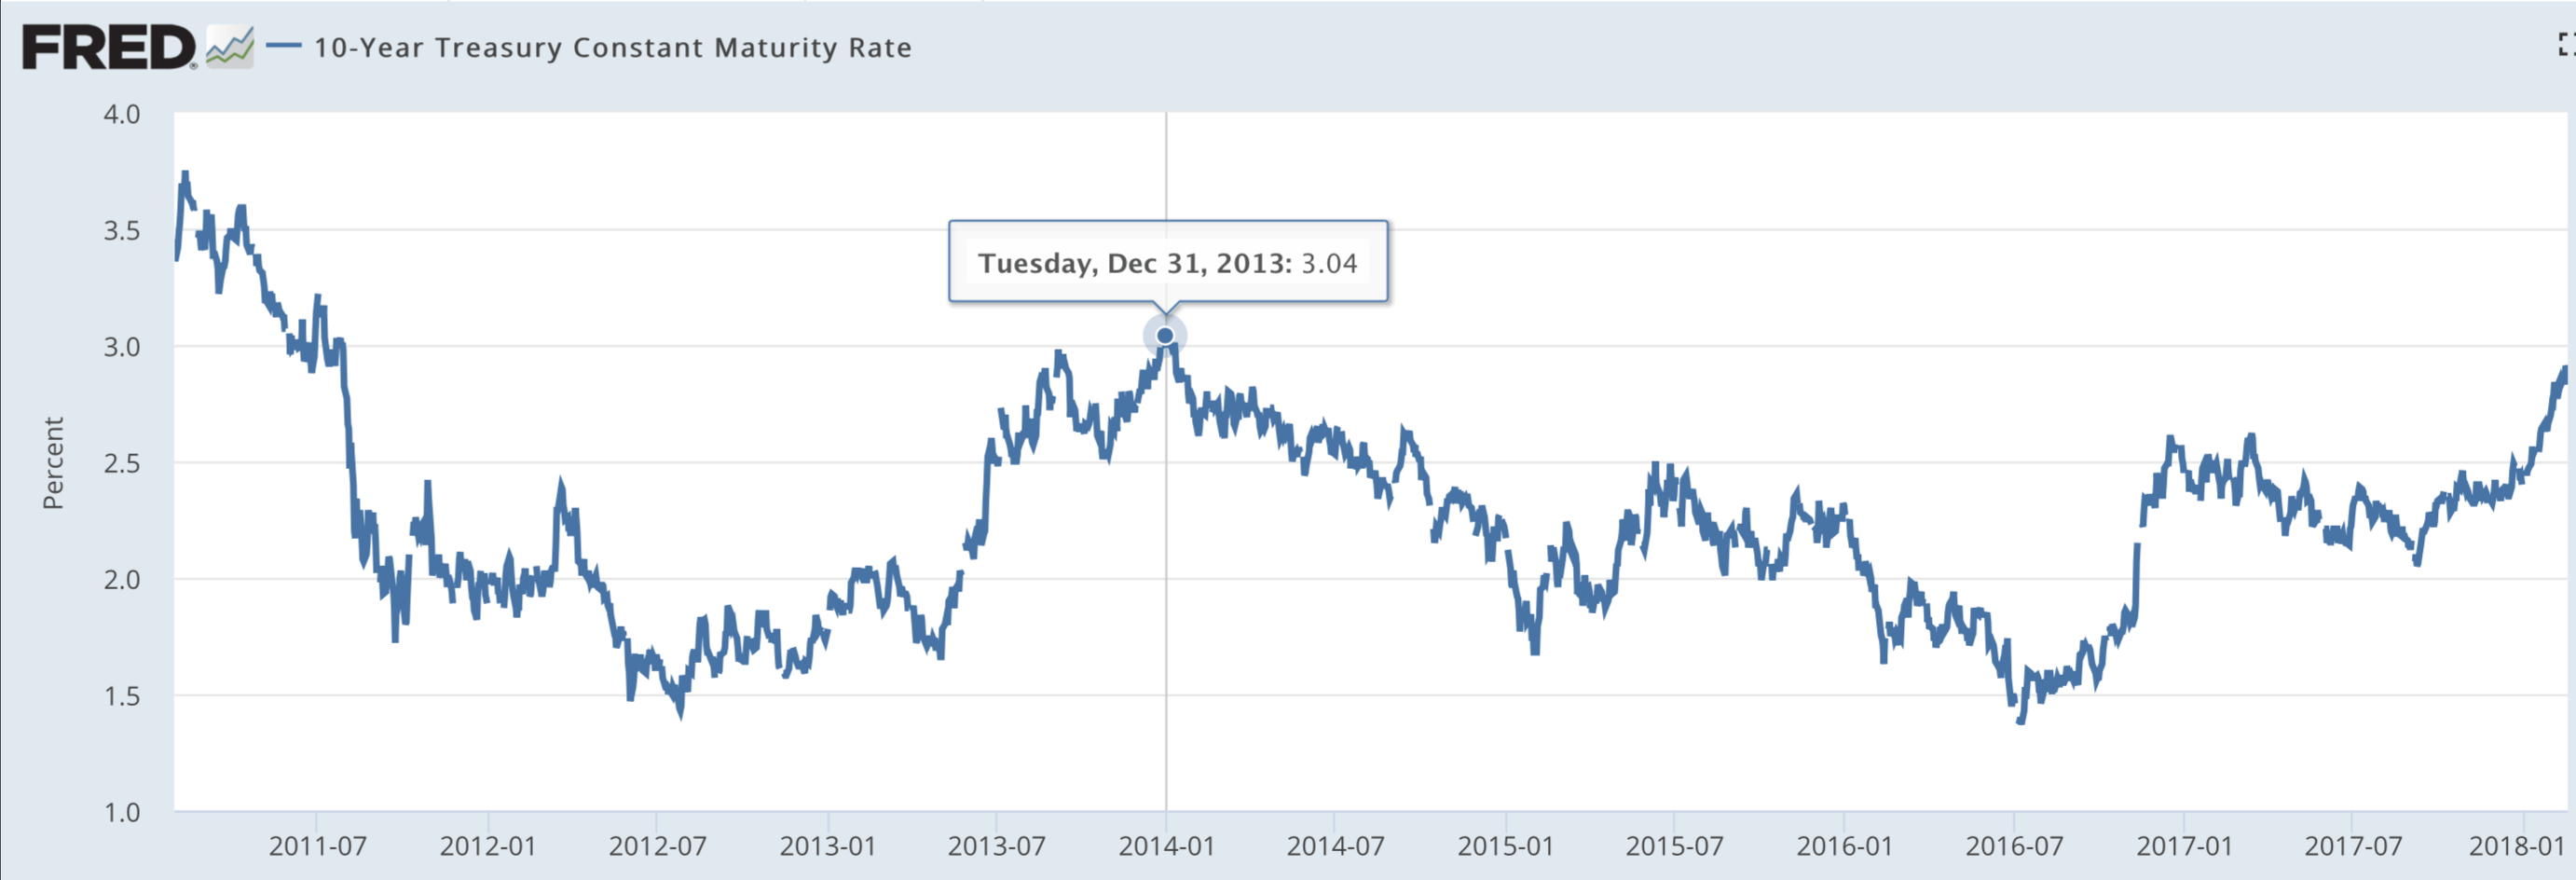 Yields of 10-year US bonds